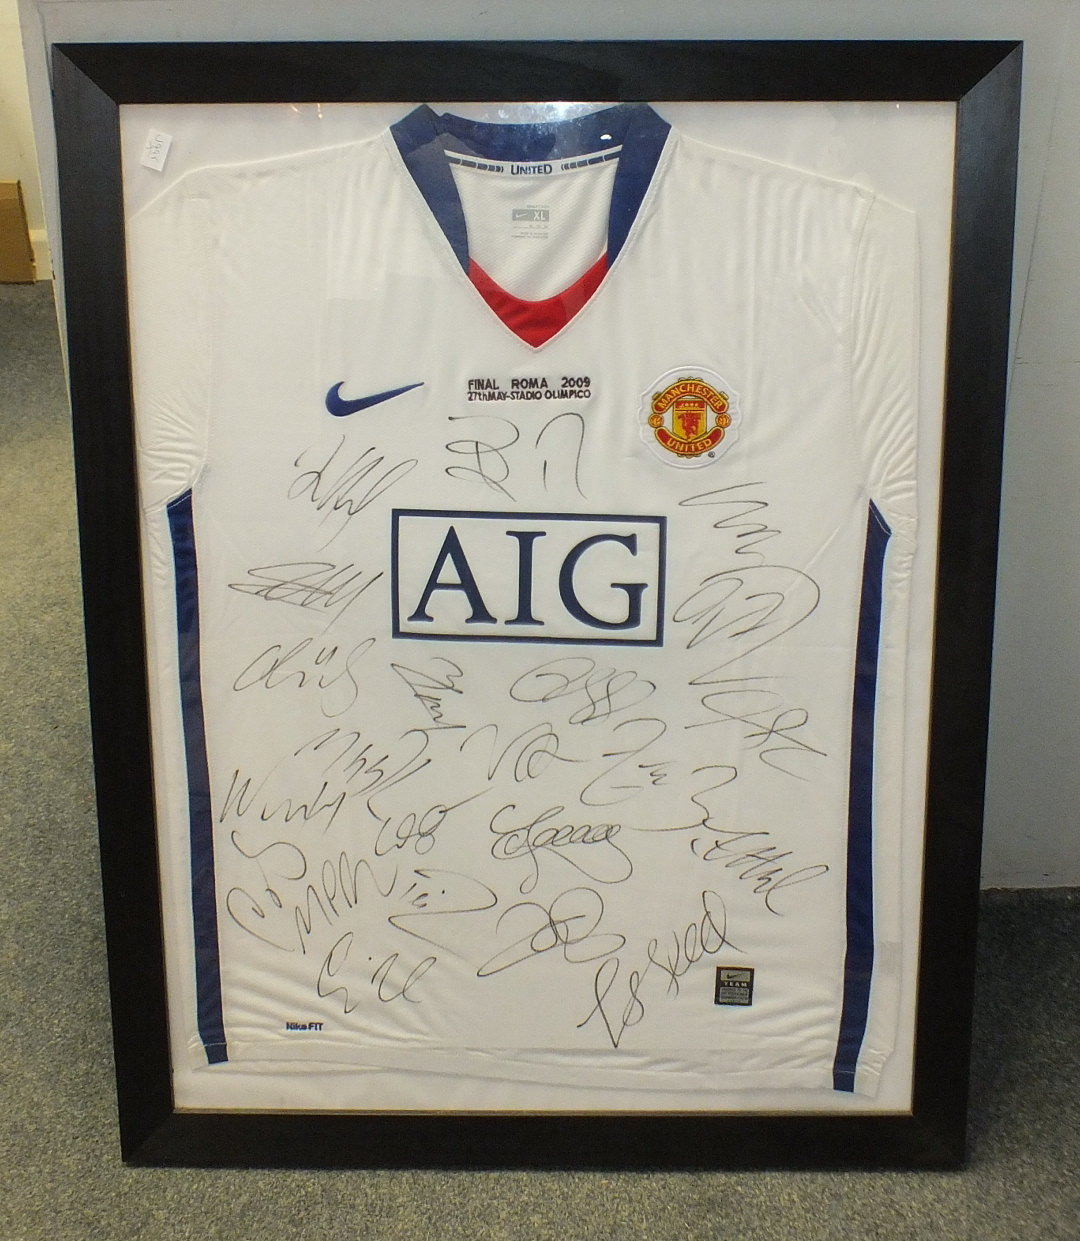 Lot 514 - A Manchester United 2009 UEFA Champions League Final shirt, signed by the team, framed.